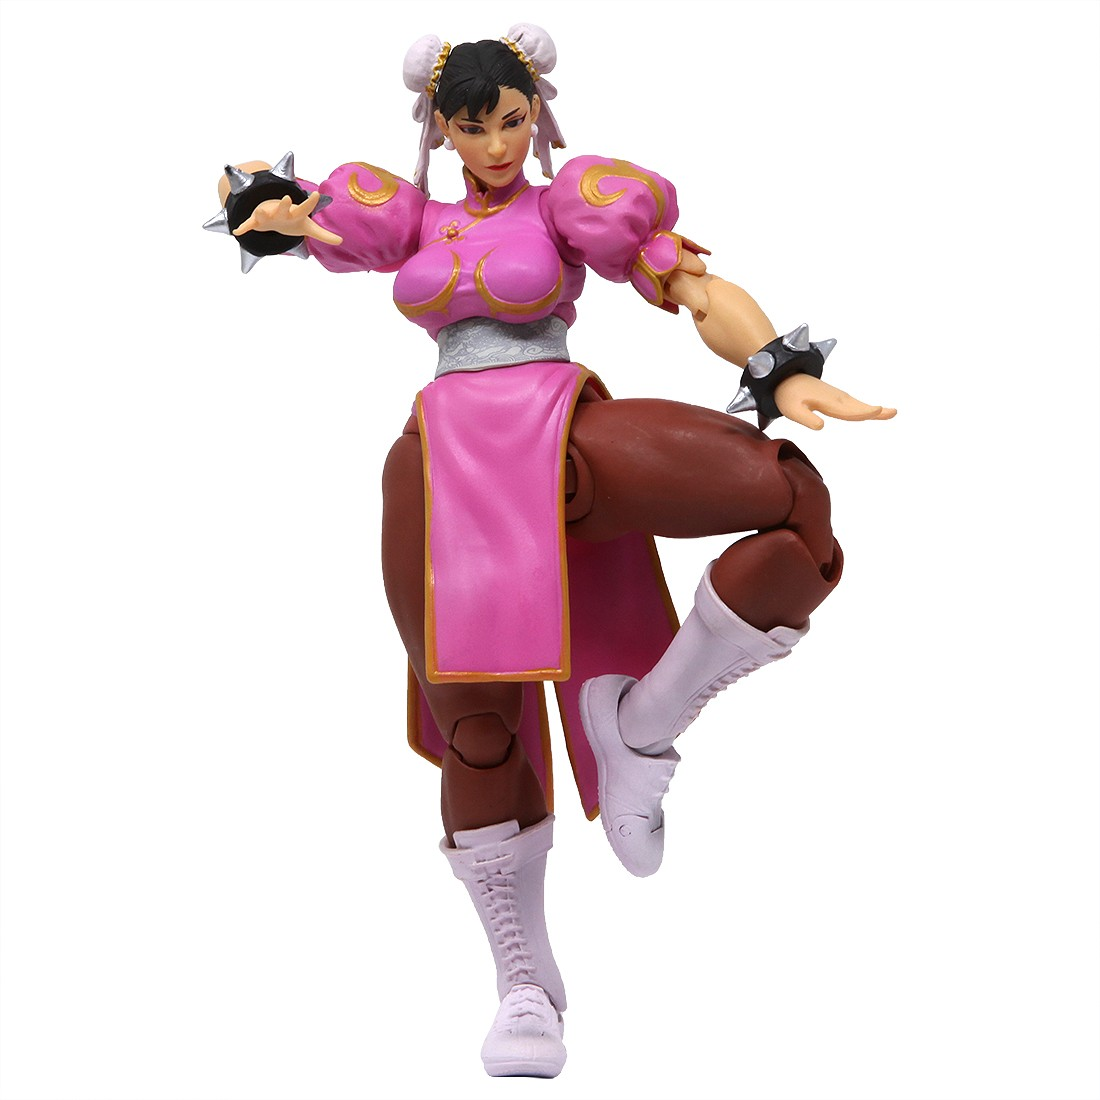 Storm Collectibles Street Fighter V Chun-Li Special Edition 1/12 Action Figure (pink)